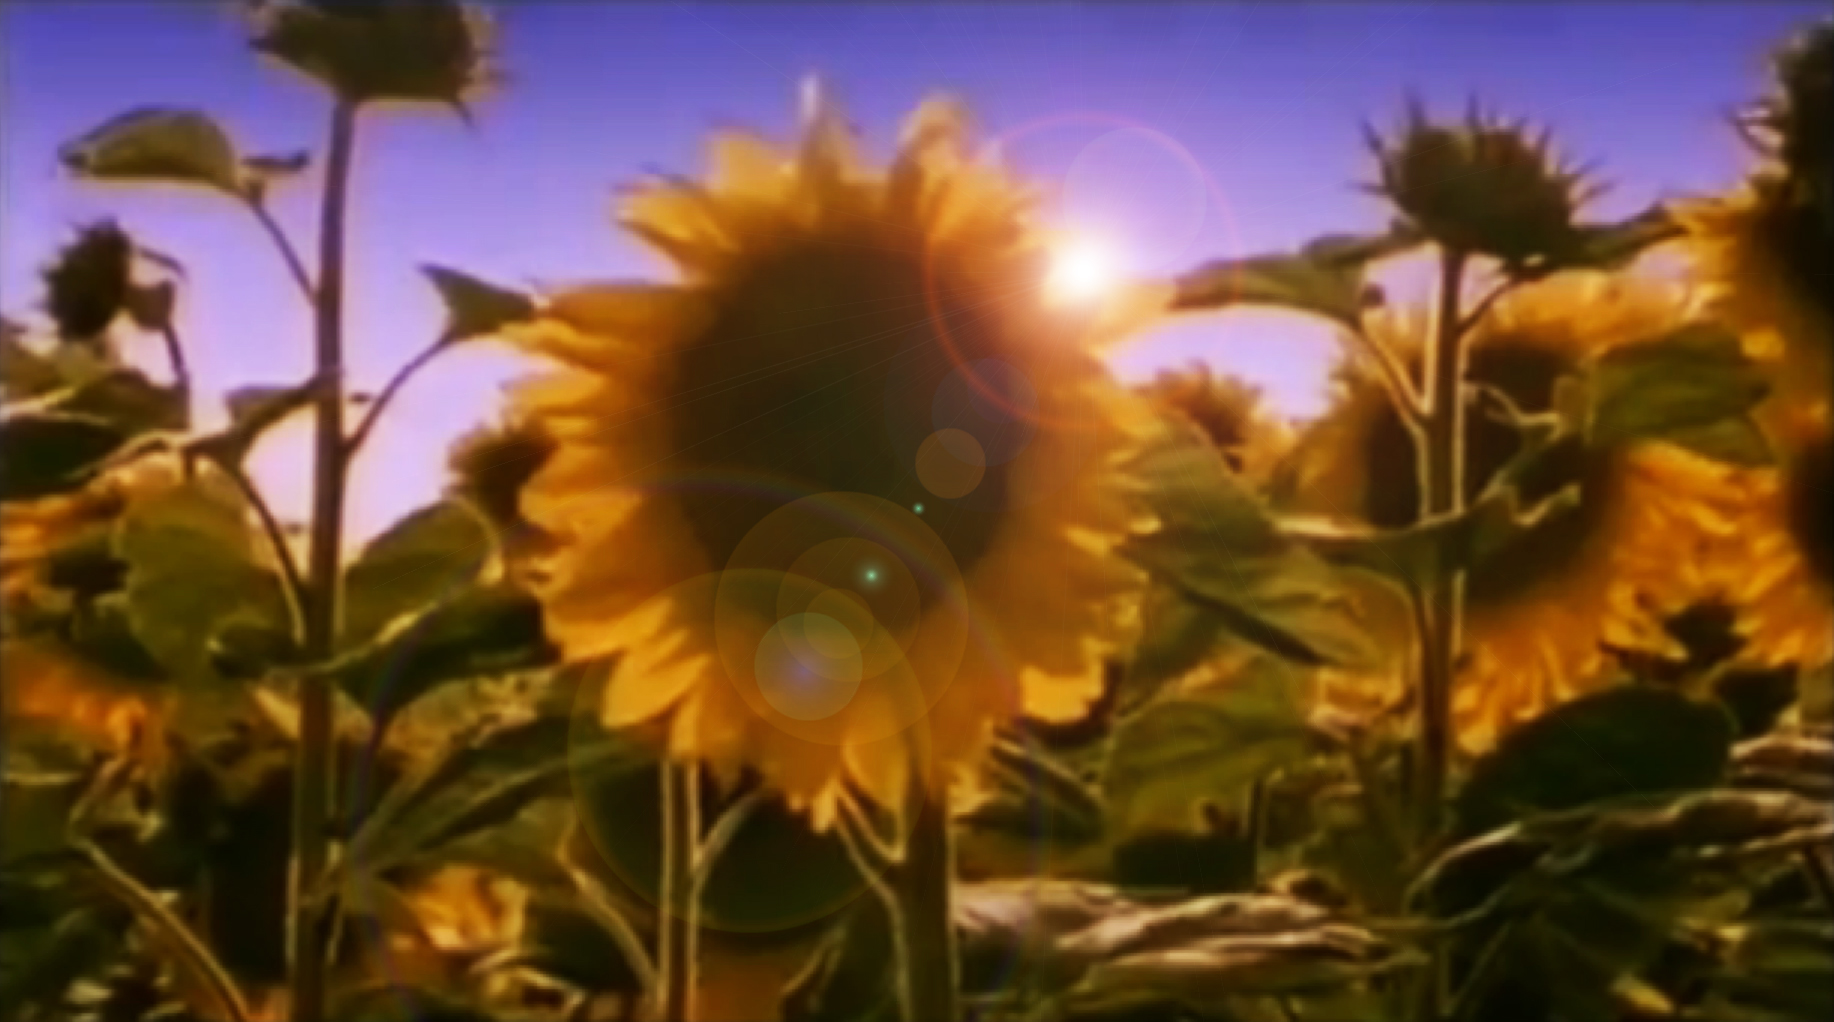 Sunflowers with Flare